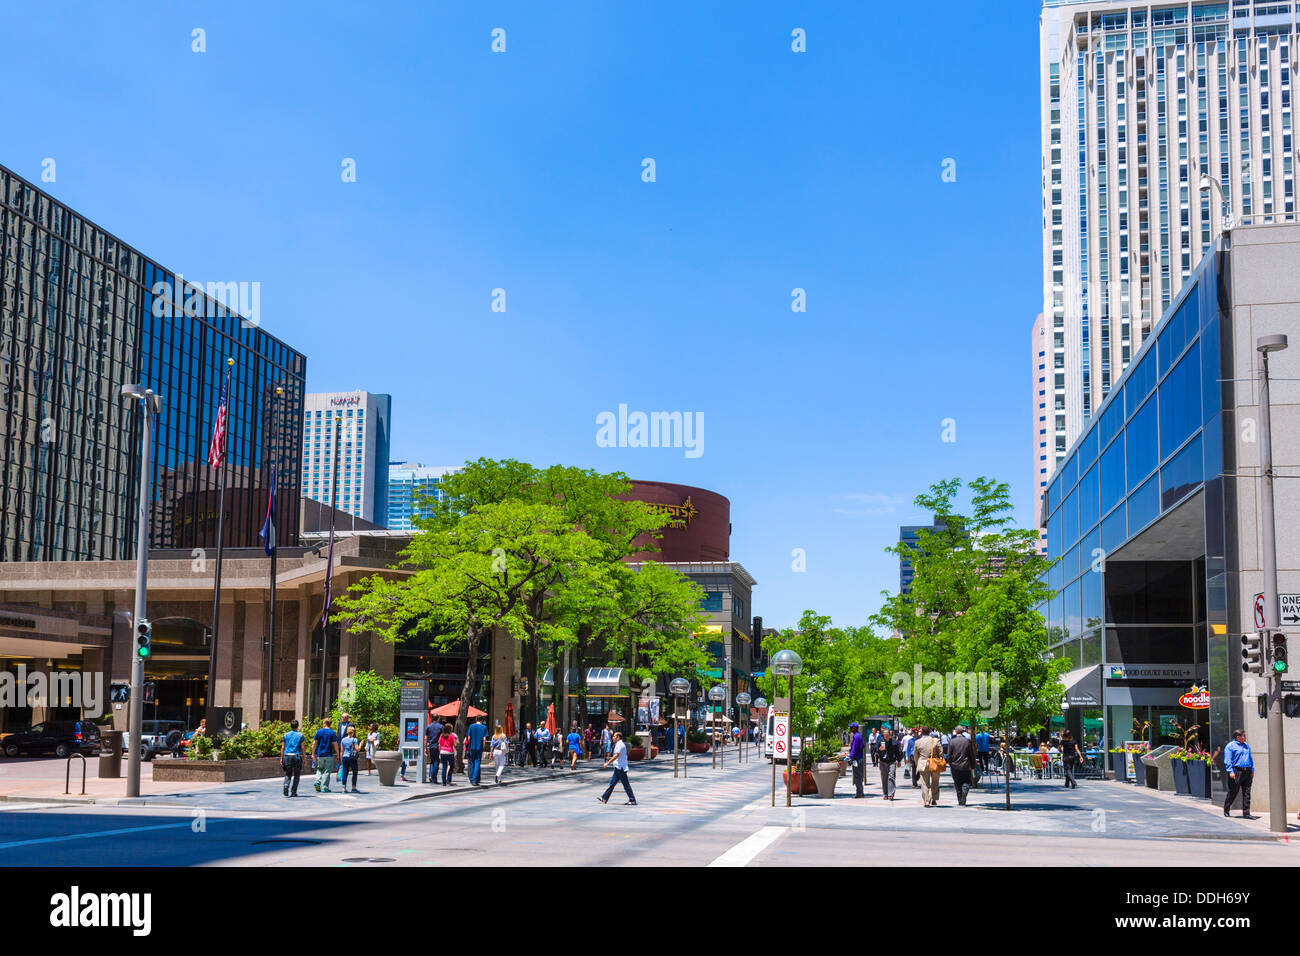 Hotels, shops and office buildings on the pedestrianised 16th Street Mall in downtown Denver, Colorado, USA - Stock Image